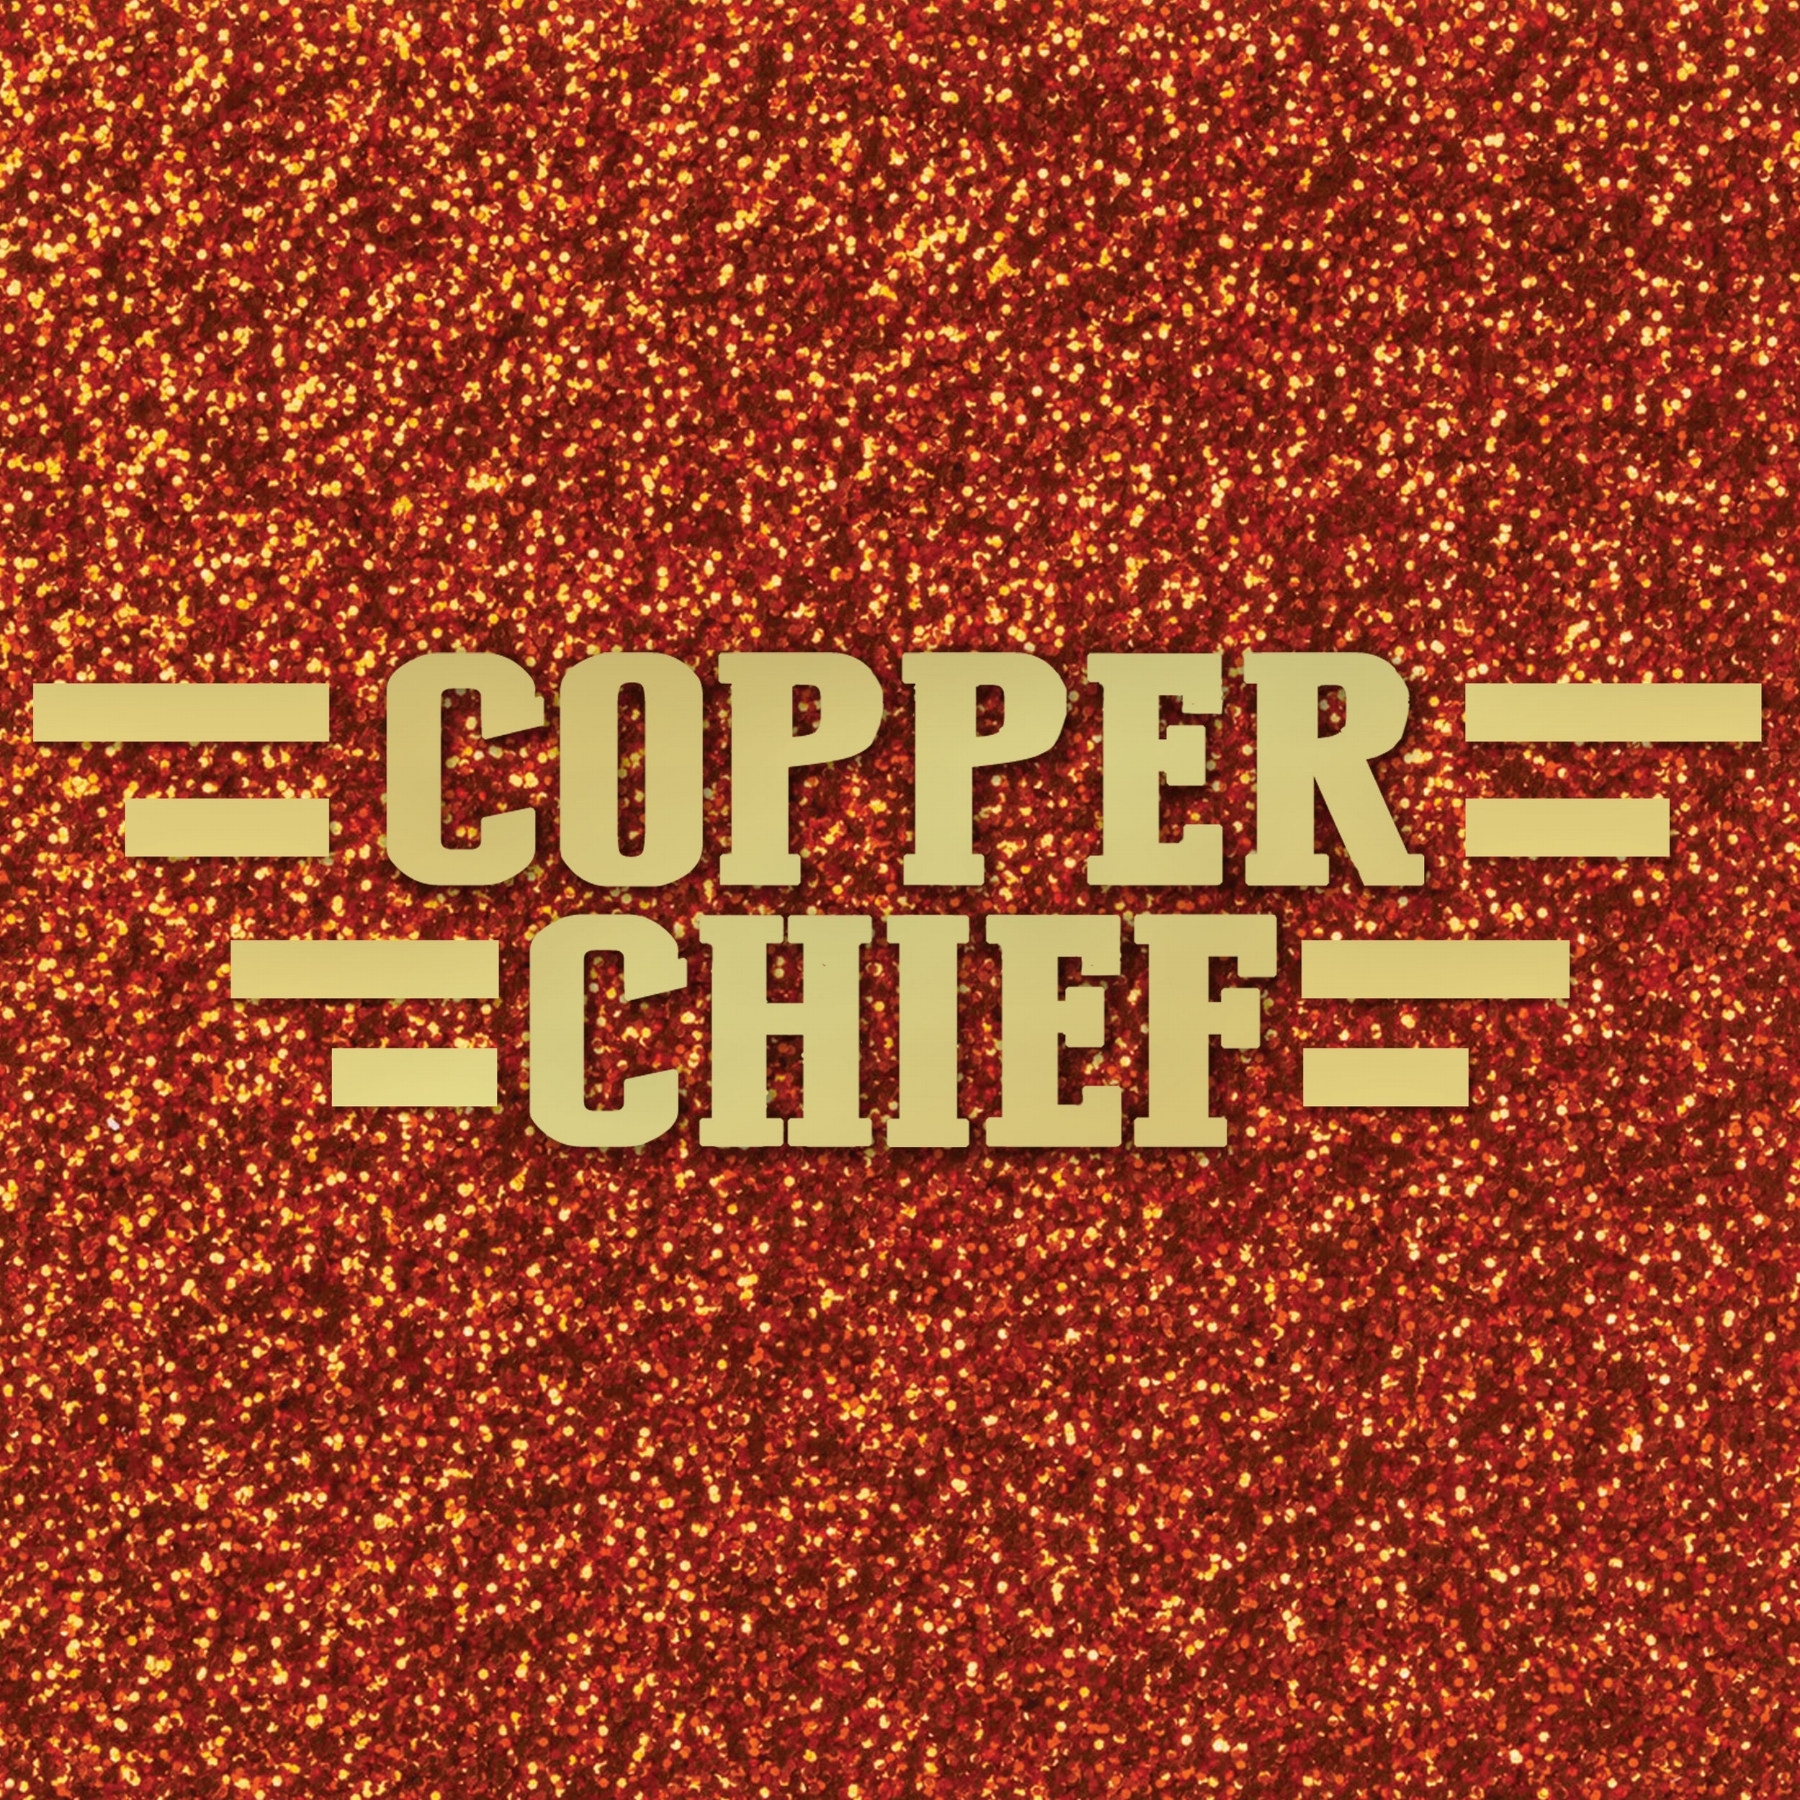 Copper Chief Album Art Digital 3000x3000.jpg